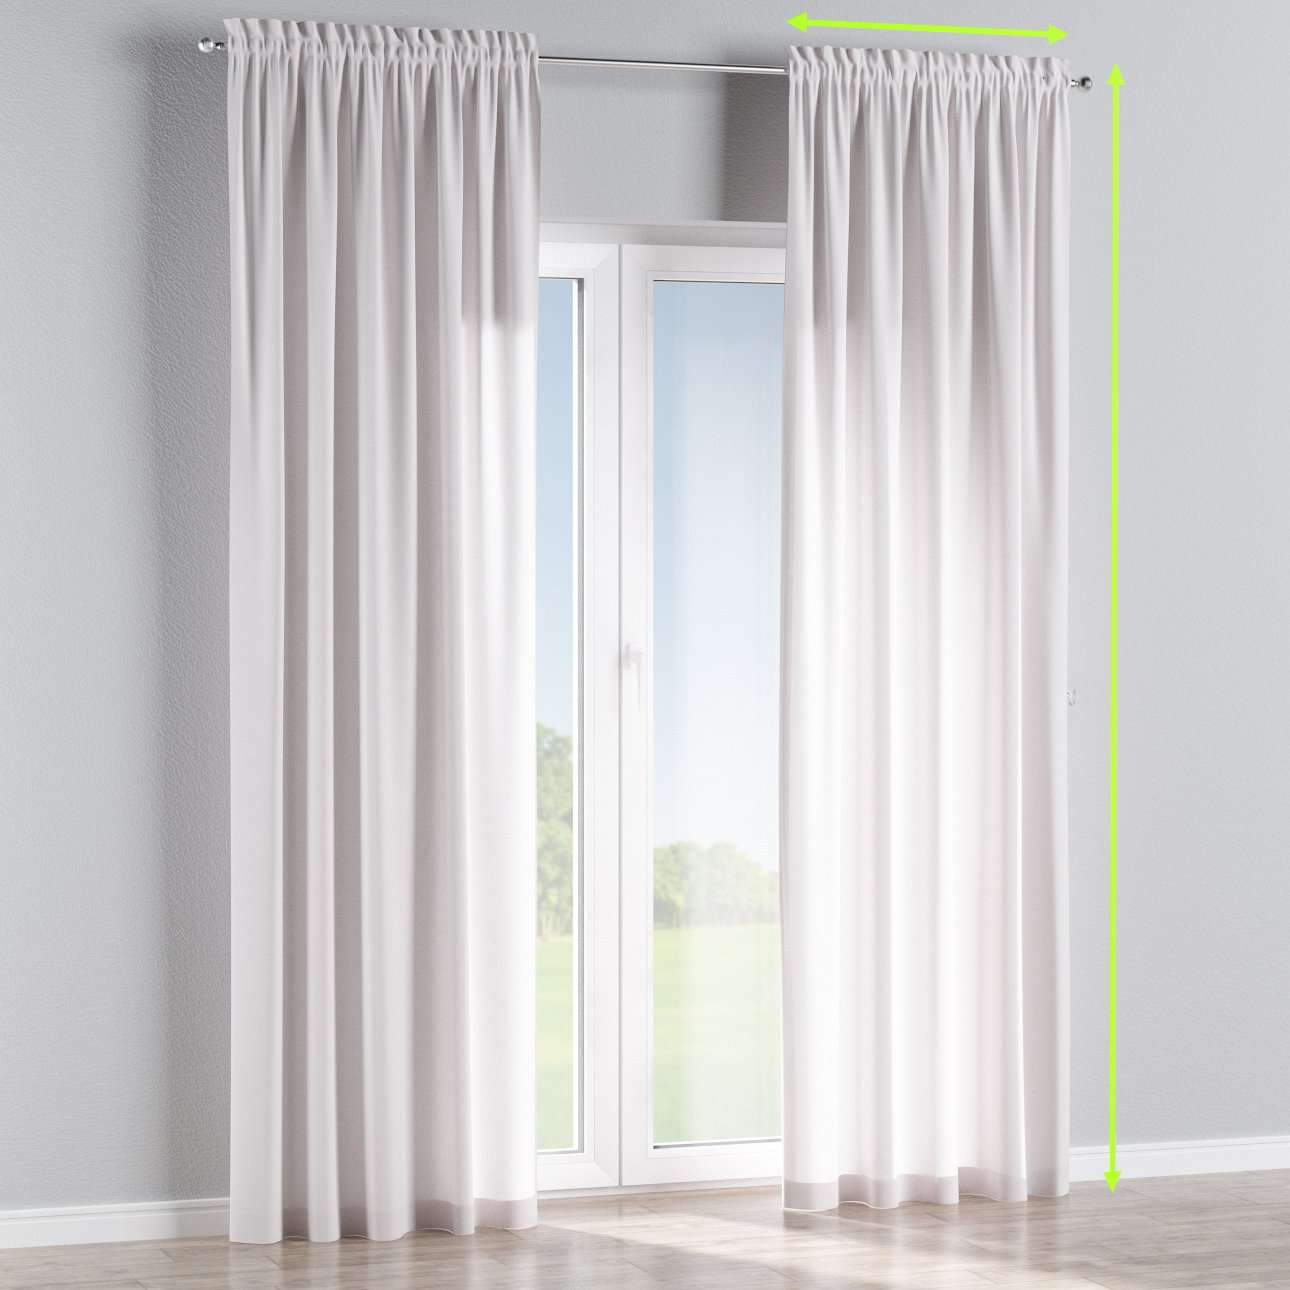 Slot and frill lined curtains in collection Cotton Panama, fabric: 702-00